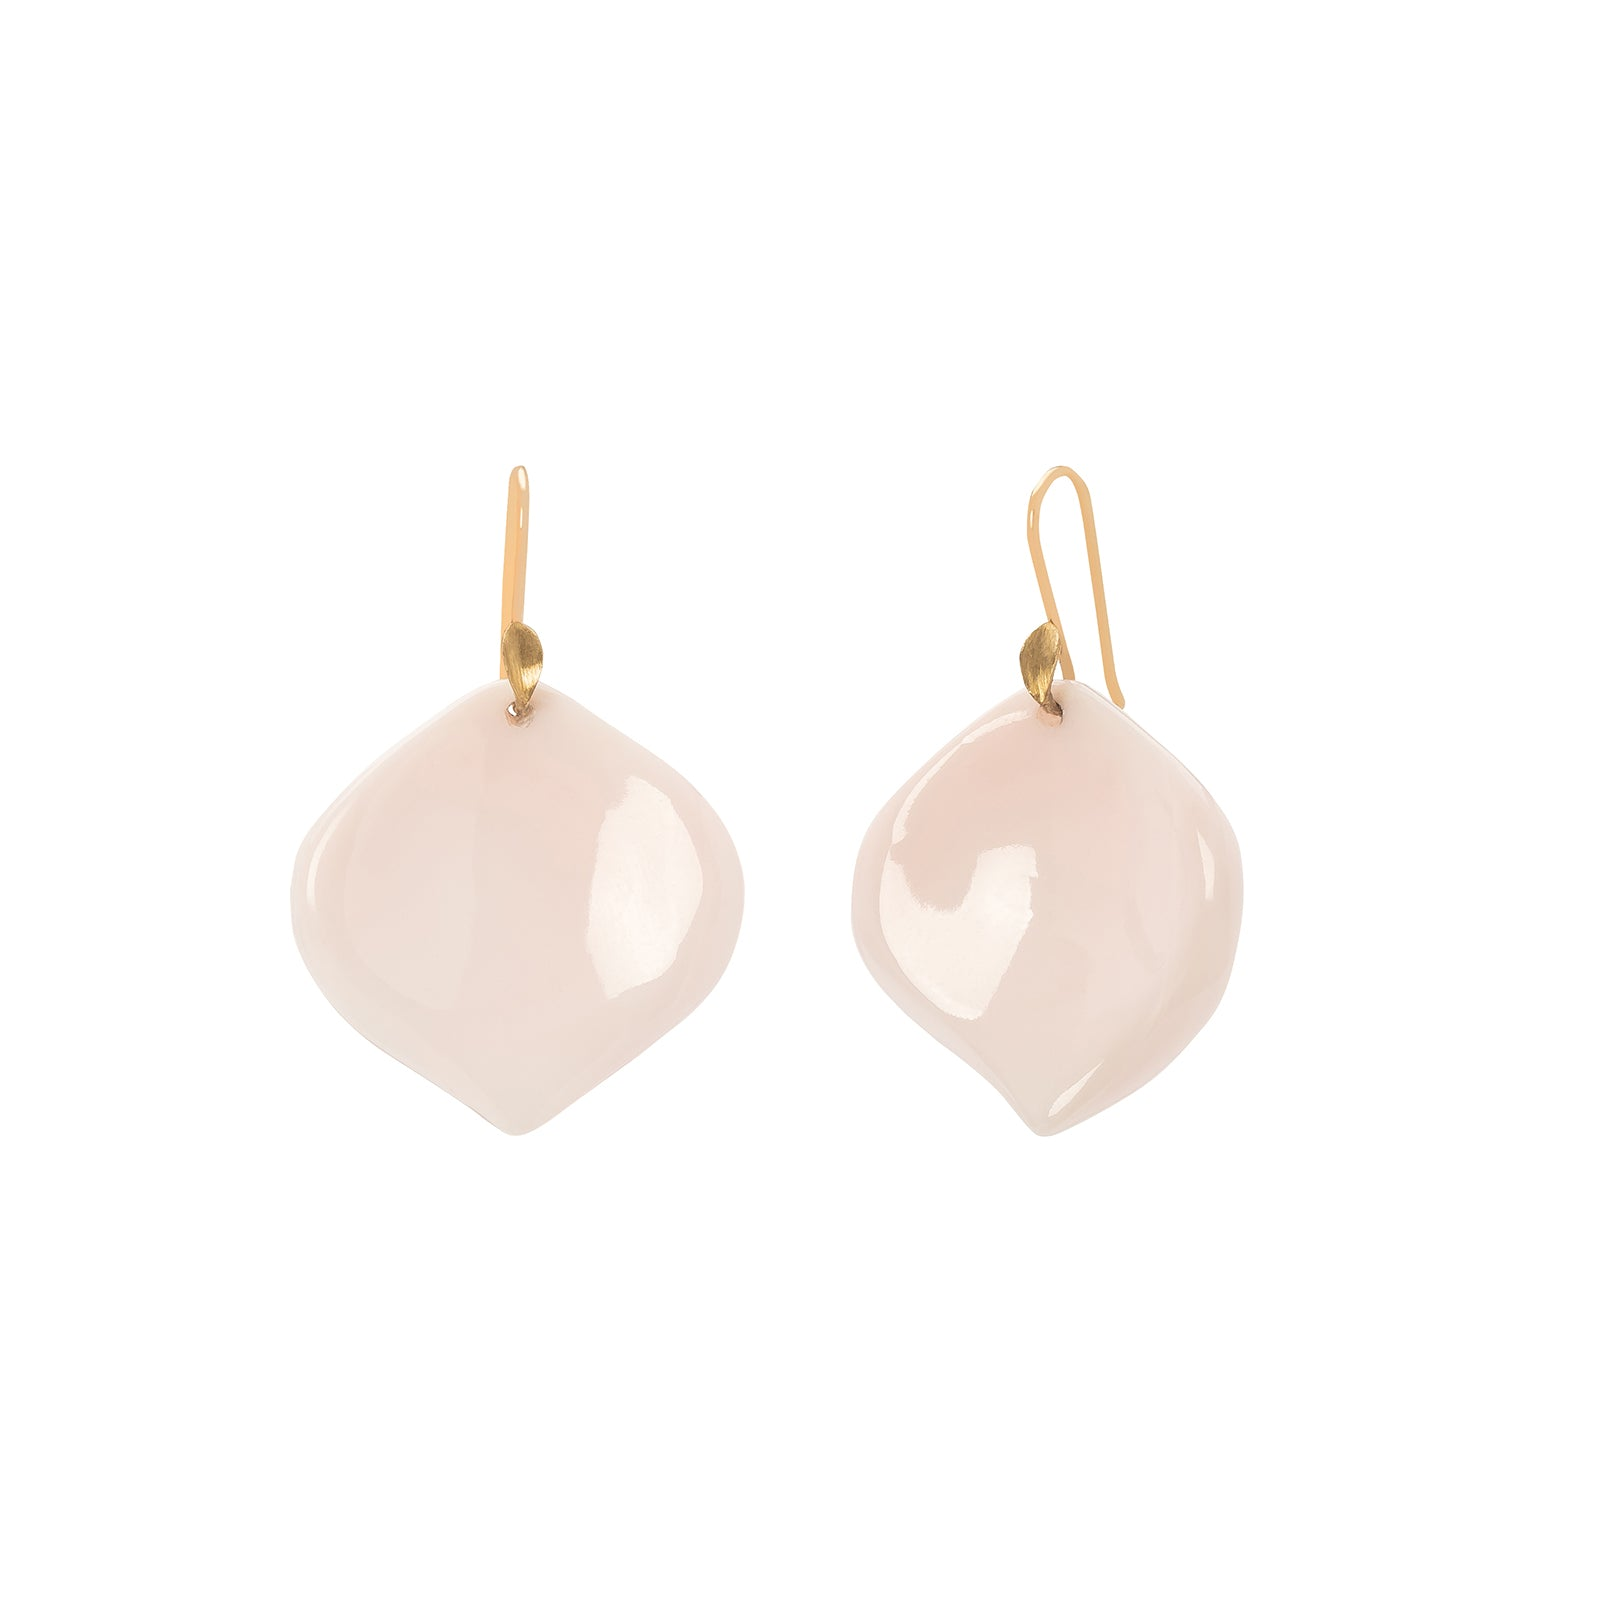 Annette Ferdinandsen Pink Conch Rose Petal Earrings - Earrings - Broken English Jewelry